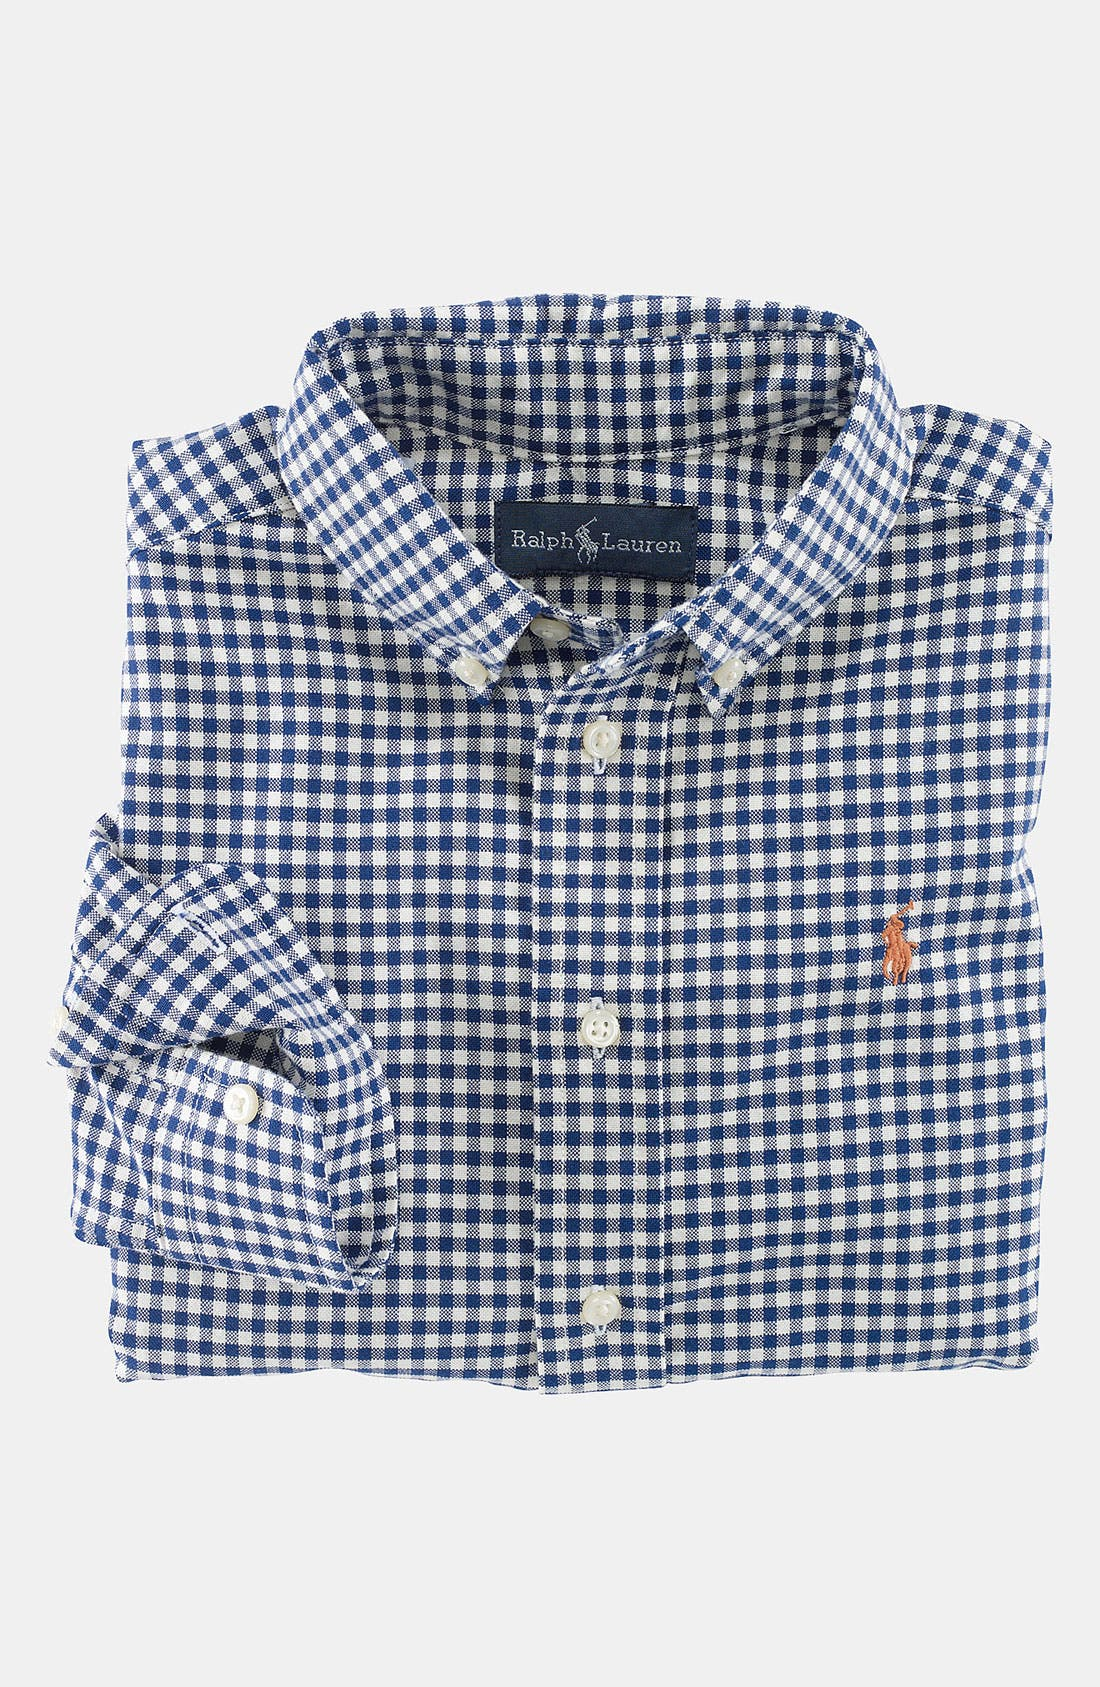 Main Image - Ralph Lauren Gingham Button Down Shirt (Toddler)